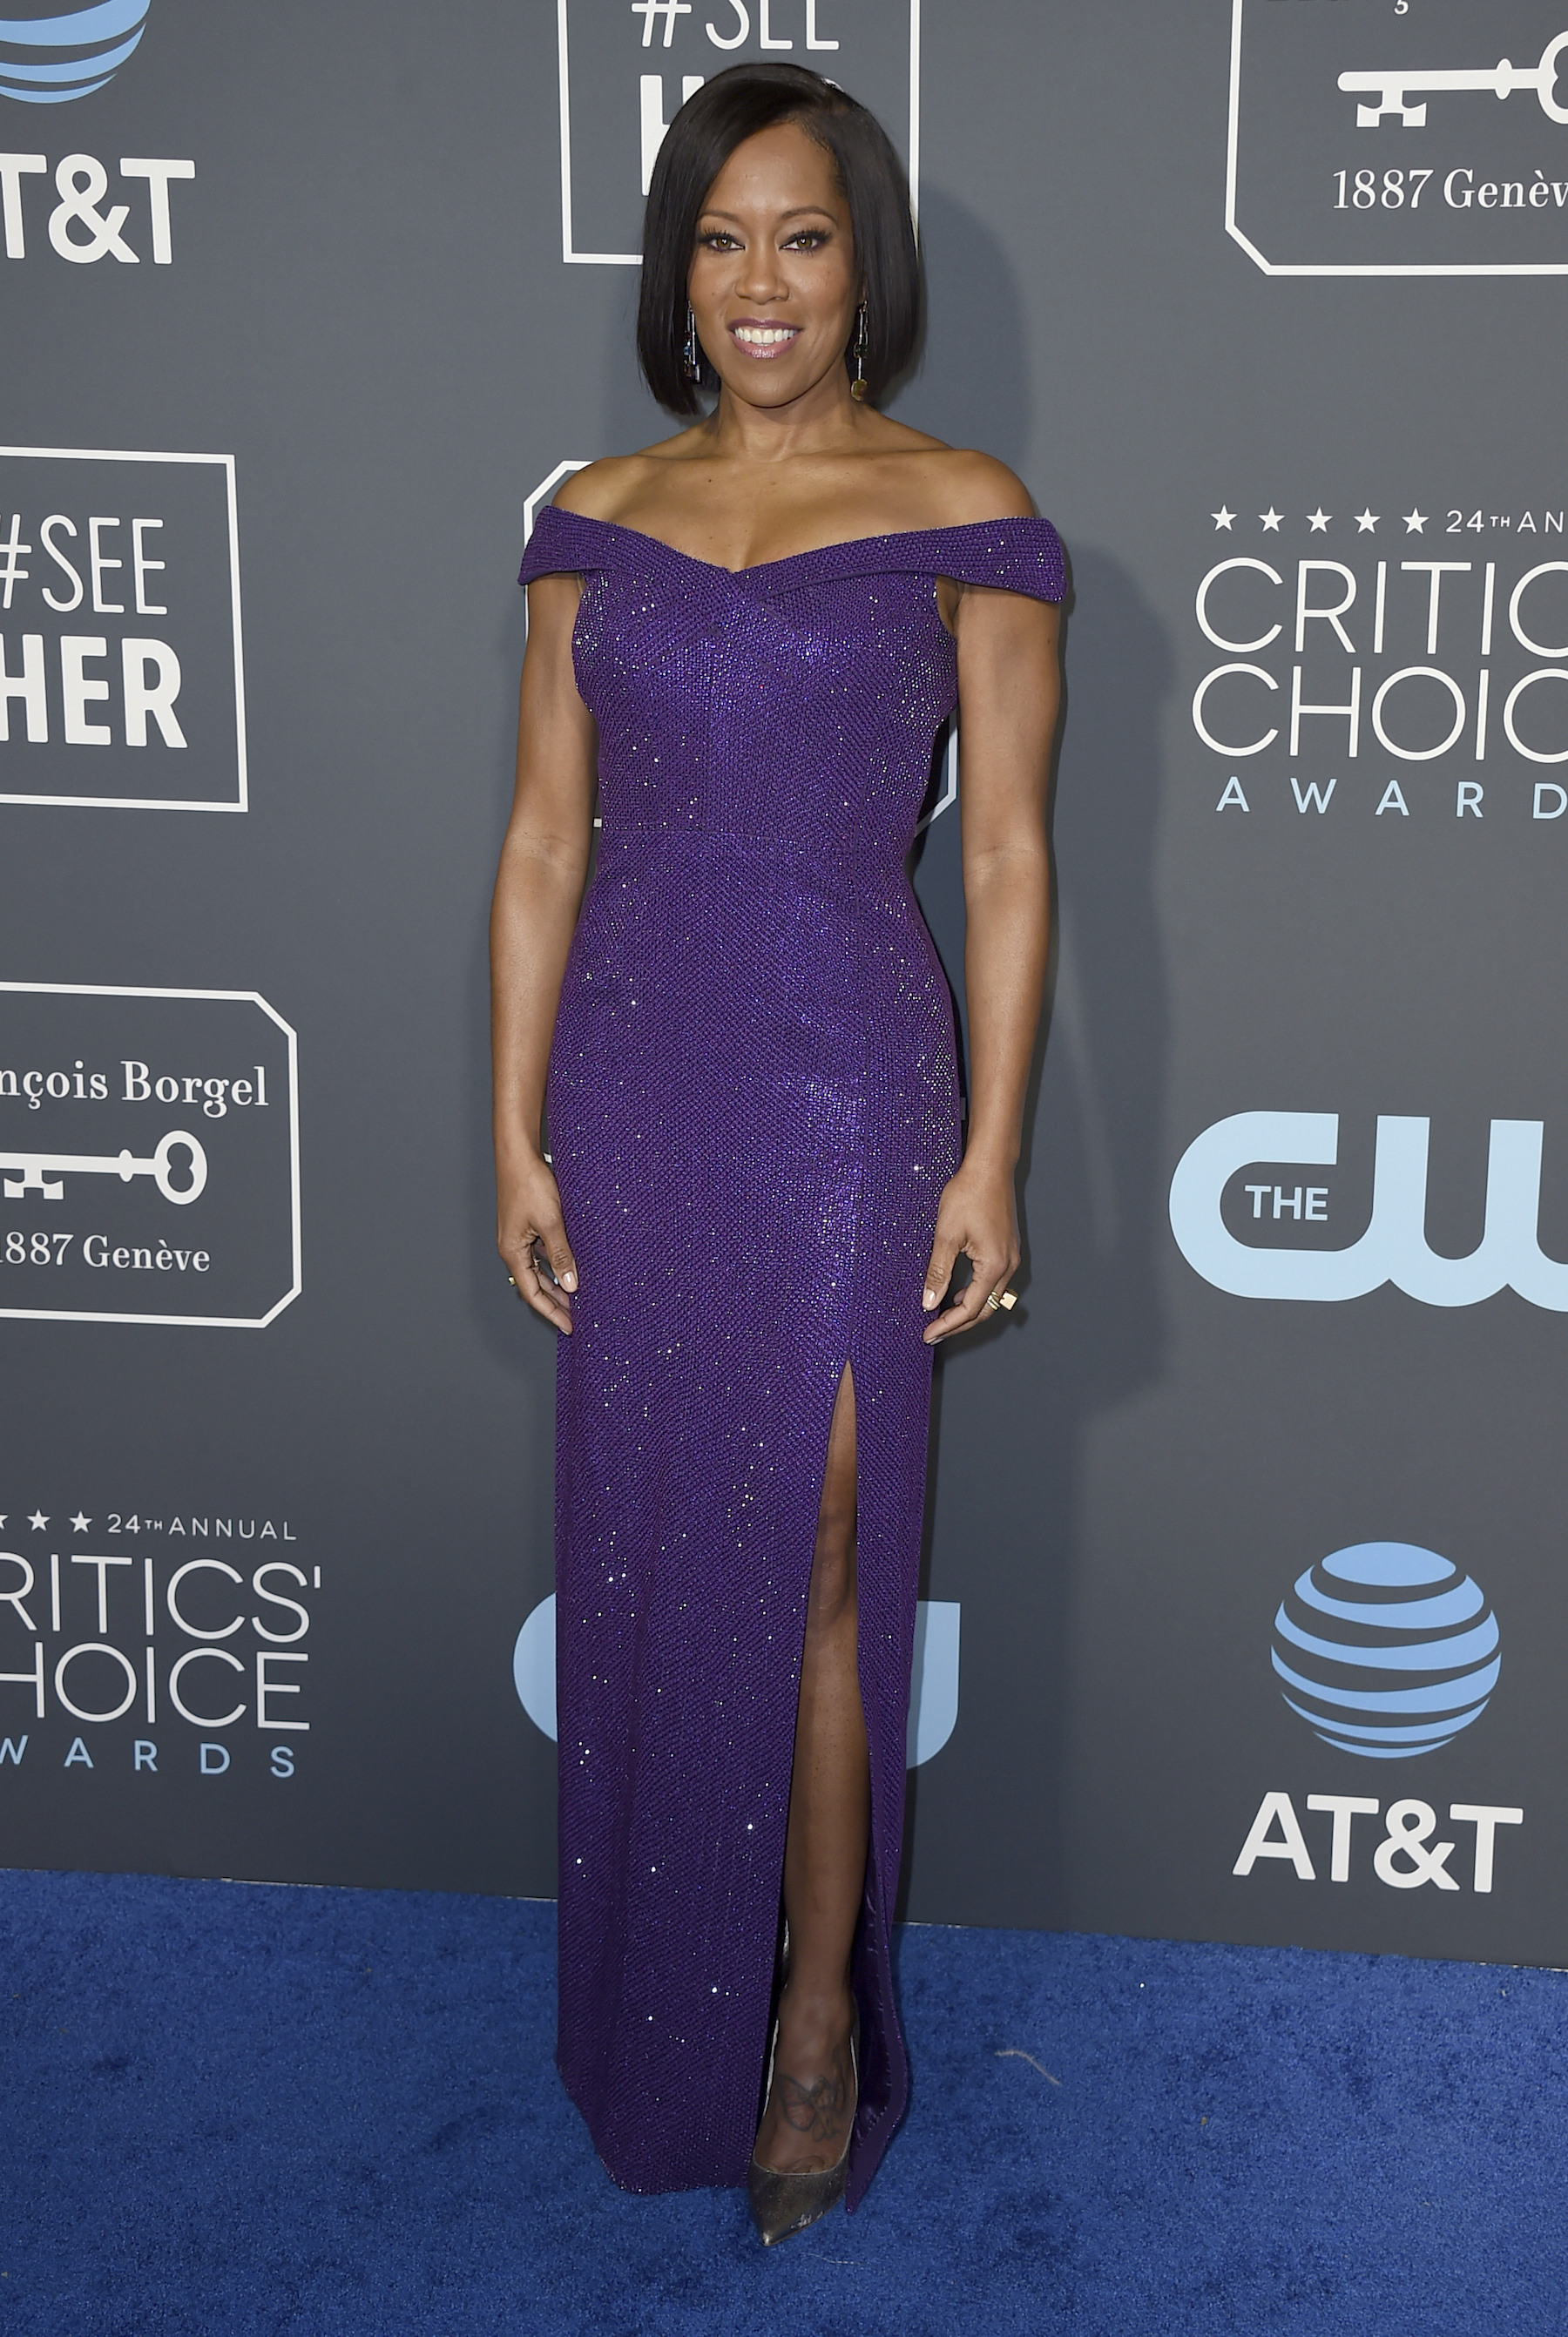 "<div class=""meta image-caption""><div class=""origin-logo origin-image ap""><span>AP</span></div><span class=""caption-text"">Regina King arrives at the 24th annual Critics' Choice Awards on Sunday, Jan. 13, 2019, at the Barker Hangar in Santa Monica, Calif. (Jordan Strauss/Invision/AP)</span></div>"